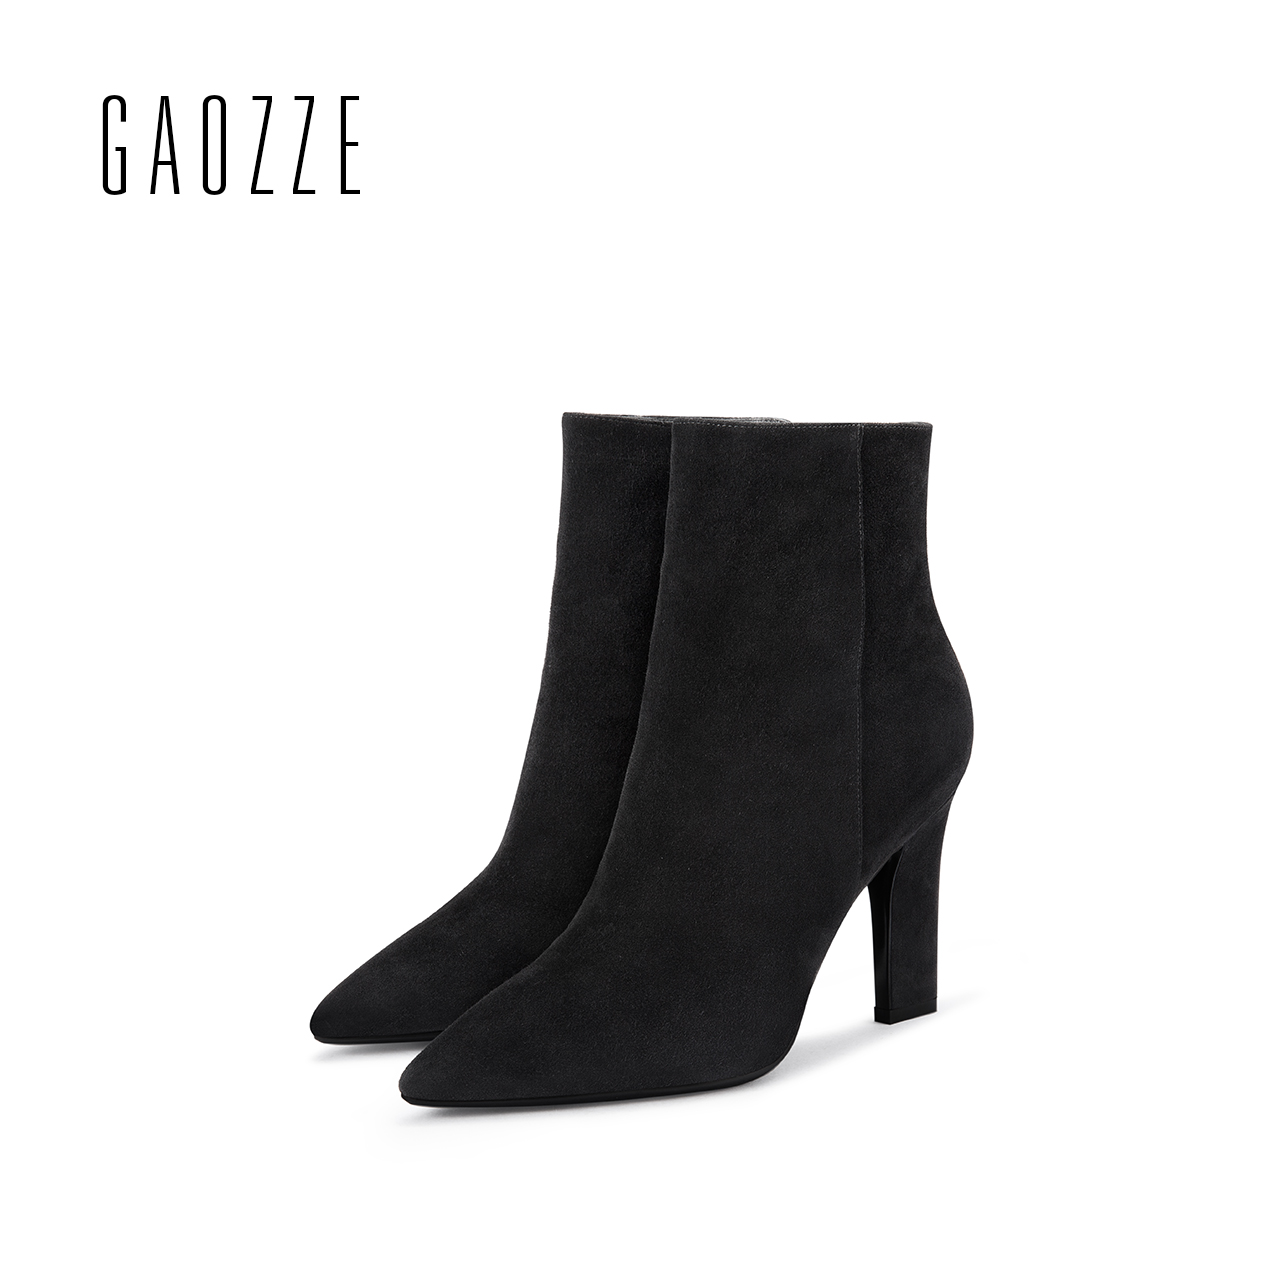 GAOZZE high heel ankle boots for women 2017 autumn new black suede leather ankle boots side zipper fashion pointed women boots цена и фото